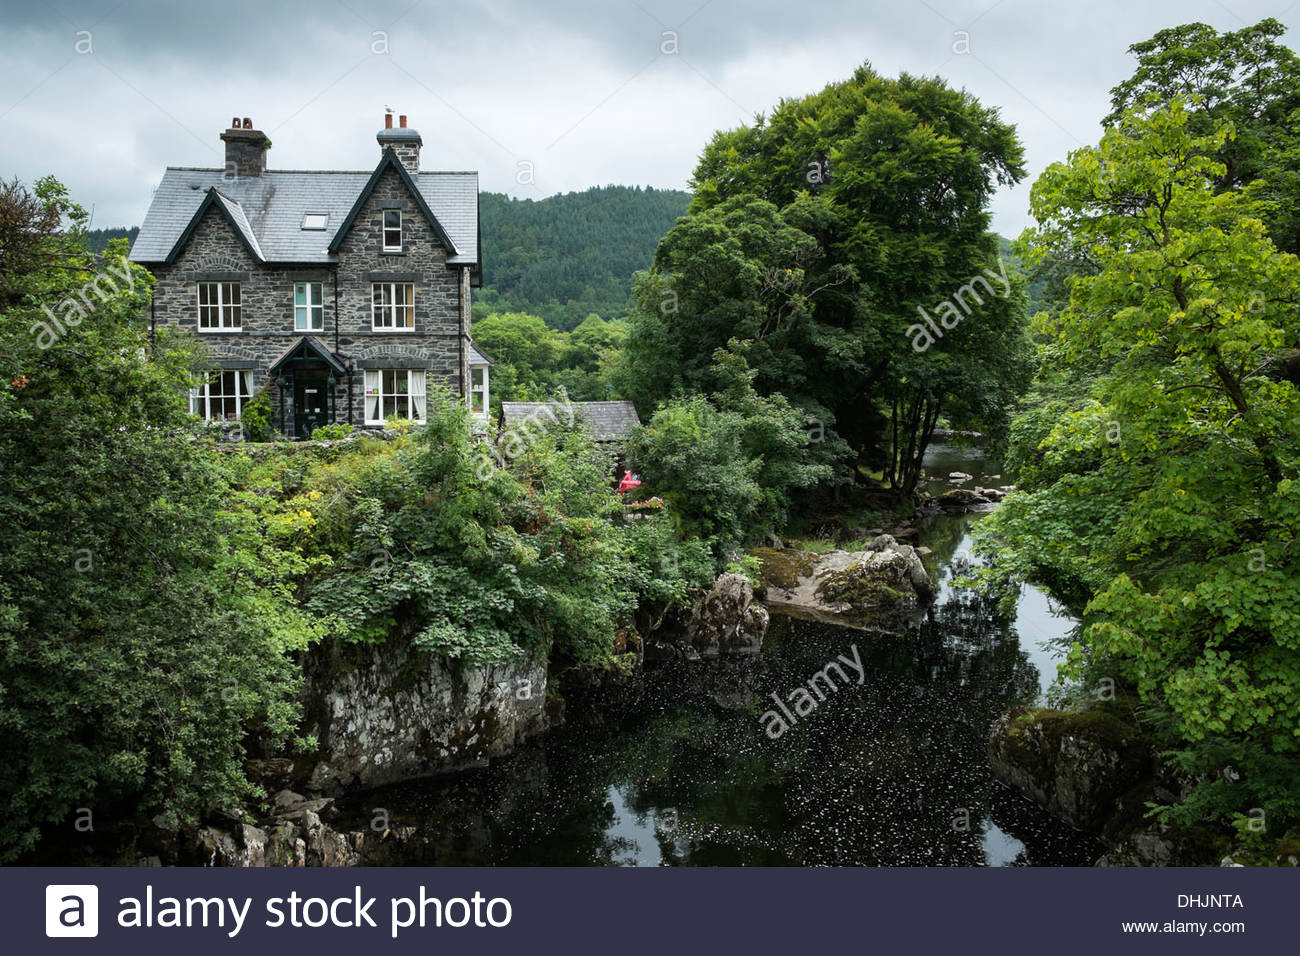 Great Britian, Wales, Caernarfonshire, Betws-y-Coed, old Guesthouse at Conwy river - Stock Image